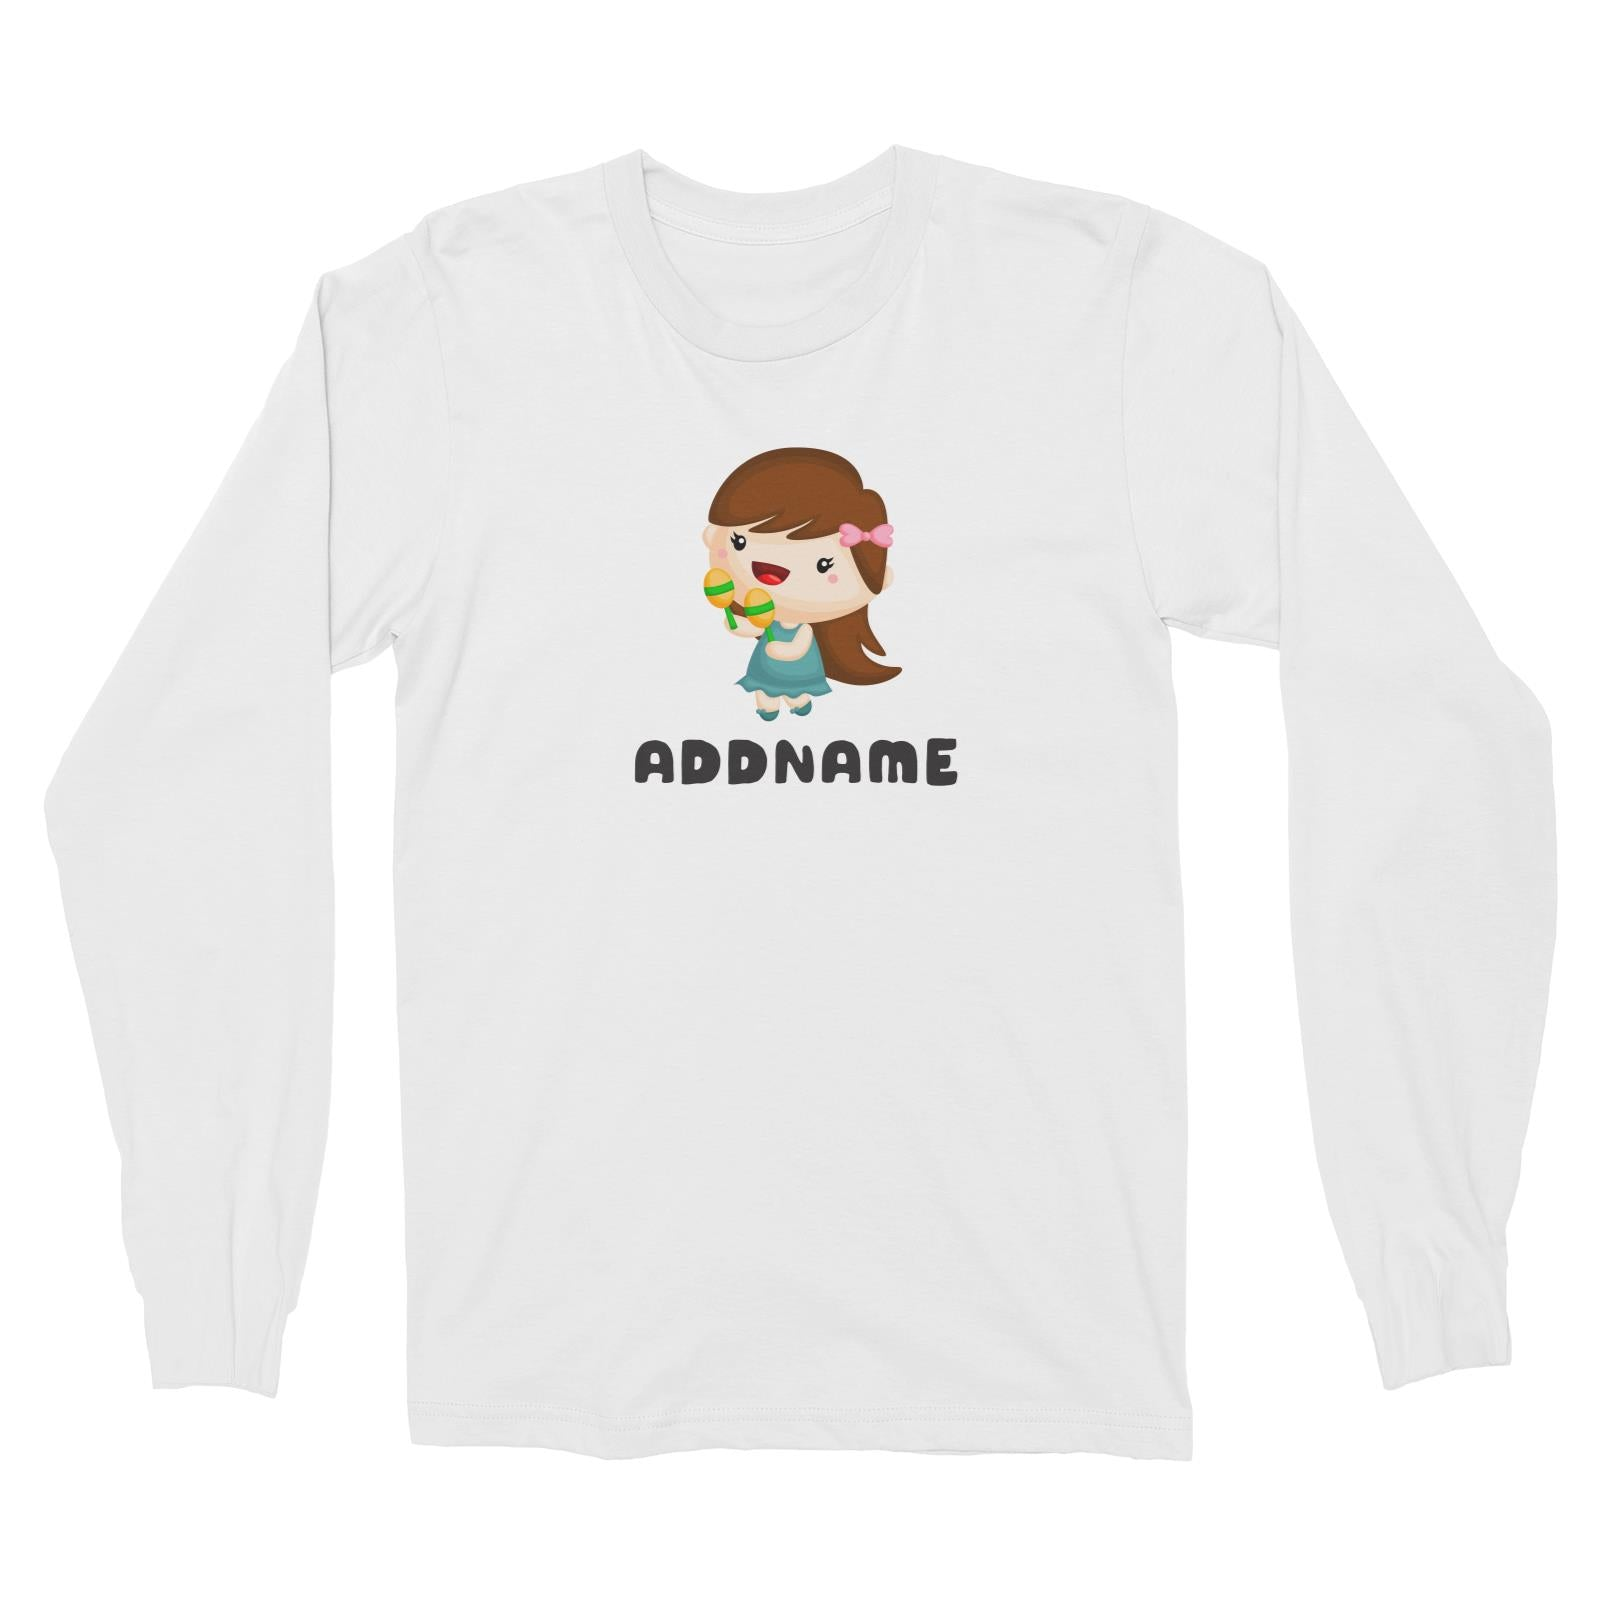 Birthday Music Band Girl Playing Maracas Addname Long Sleeve Unisex T-Shirt